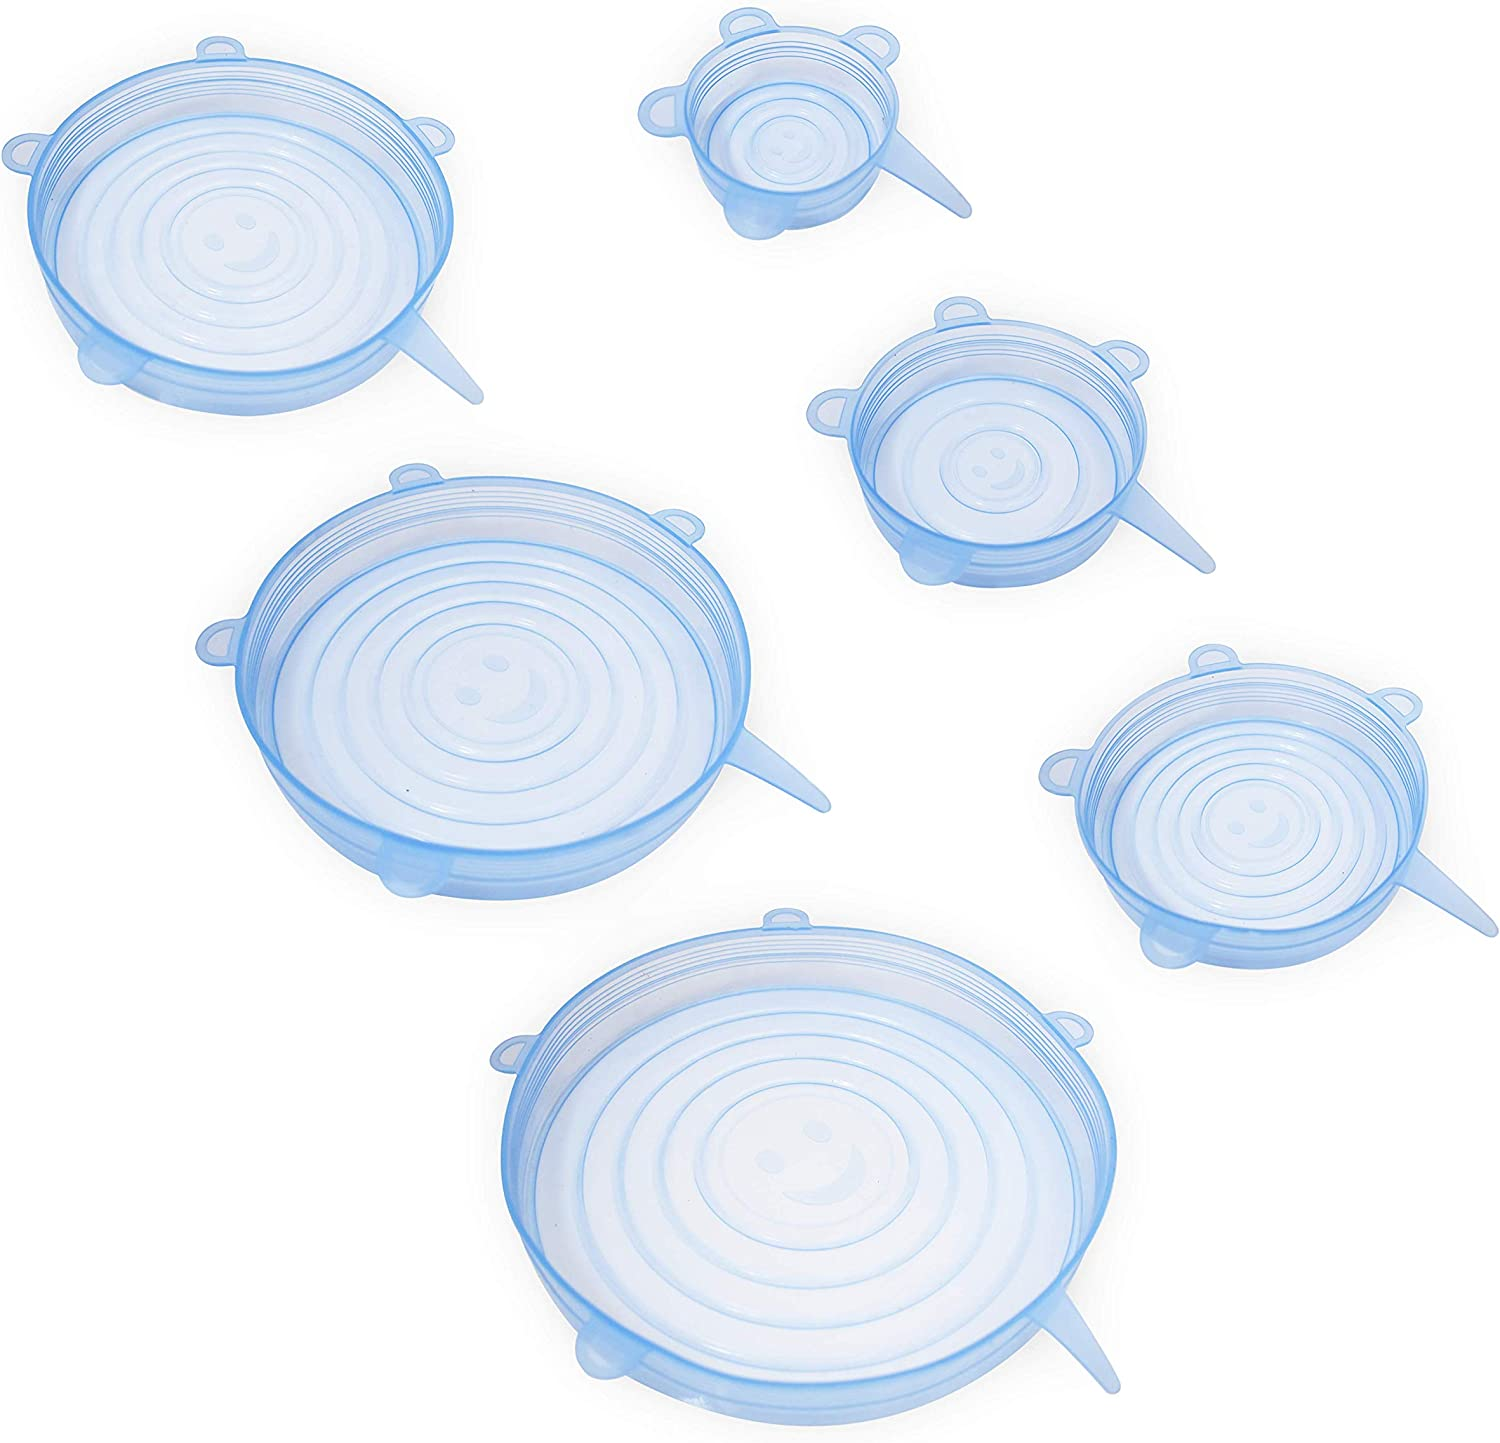 homEdge Silicone Stretch Lid, 6 Packs of Various Sizes